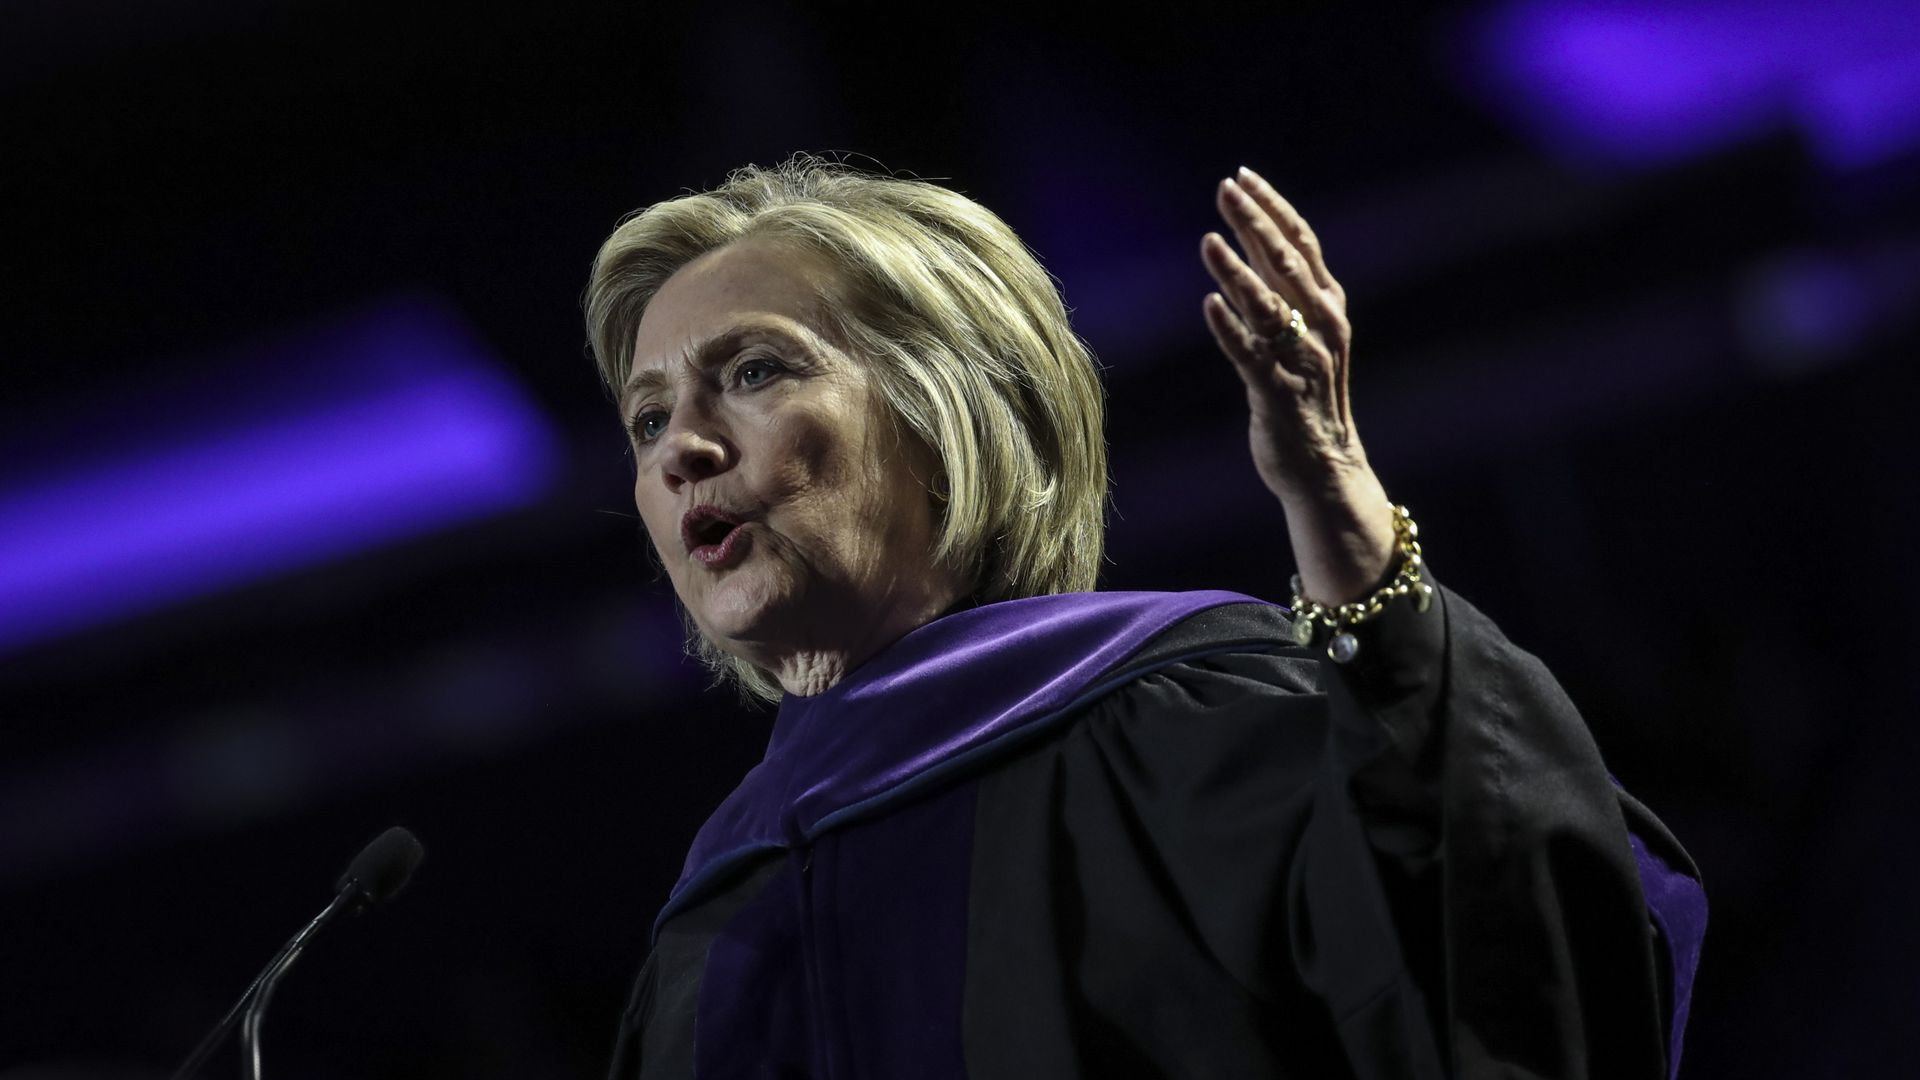 Former U.S. Secretary of State Hillary Clinton delivers the commencement address at the Hunter College Commencement ceremony at Madison Square Garden, May 29, 2019 in New York City.